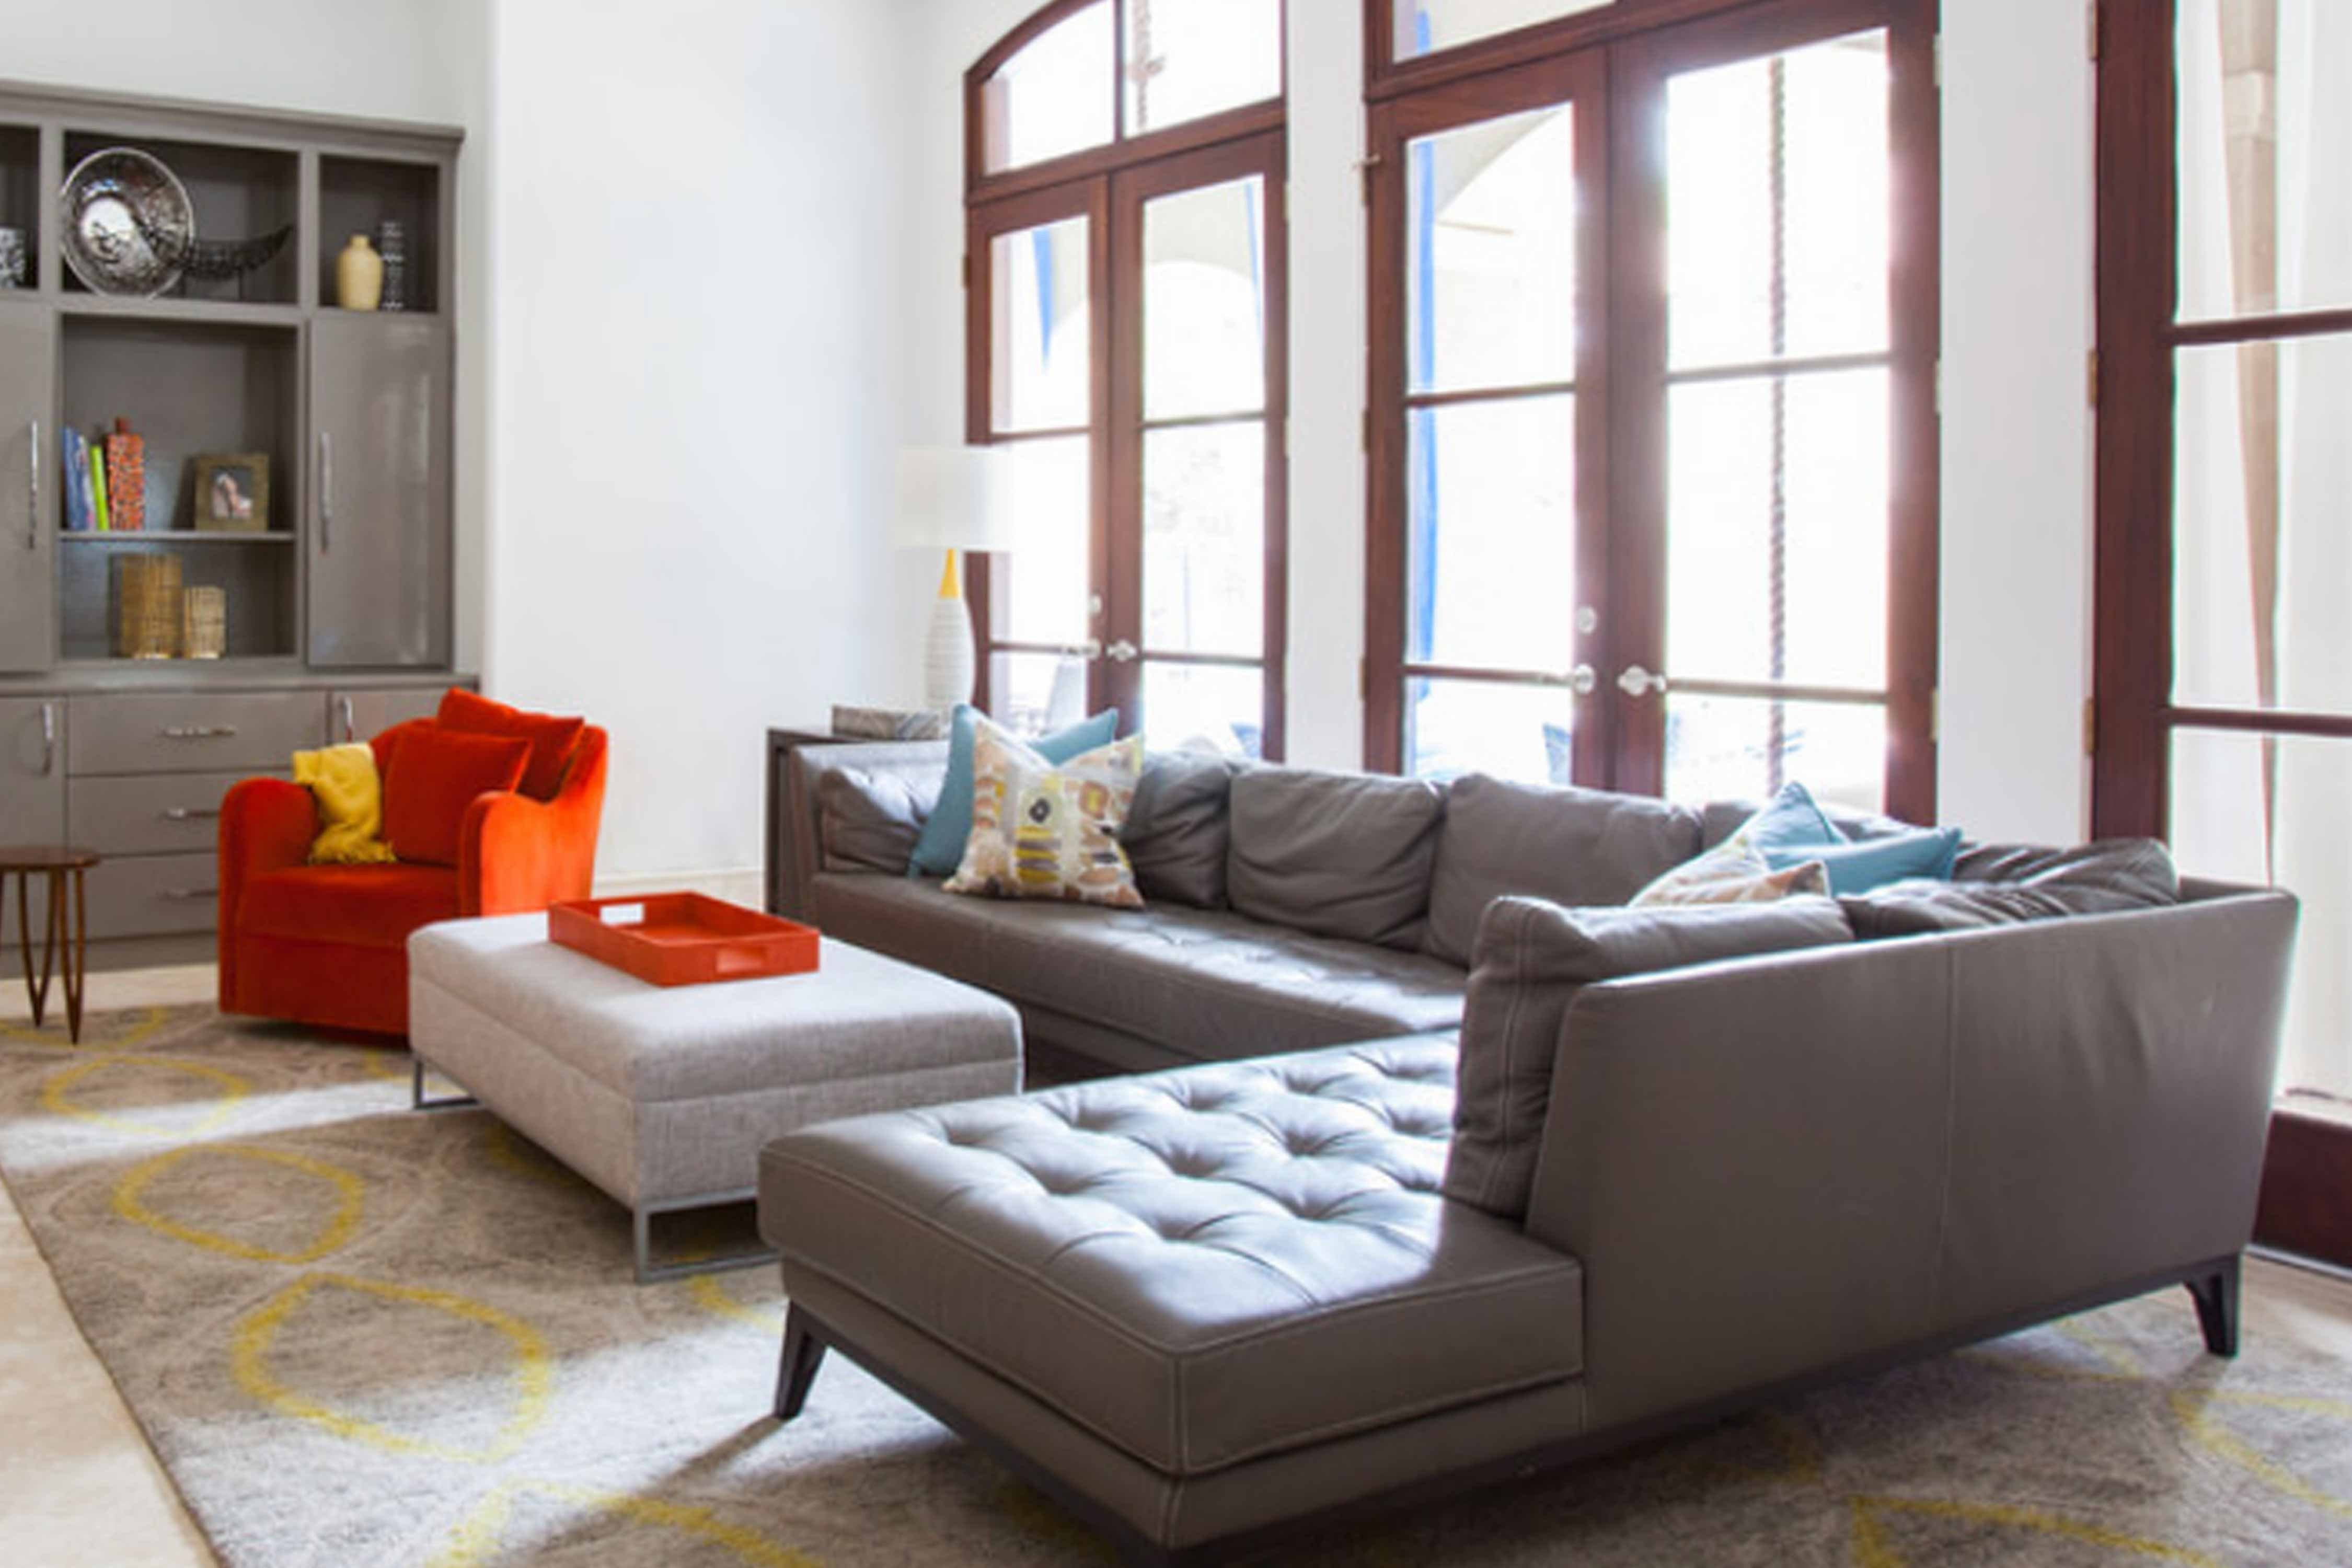 Modern Chair Living Room Decorating Ideas Modern Living 5 Of the Latest Home Décor Trends Fumro